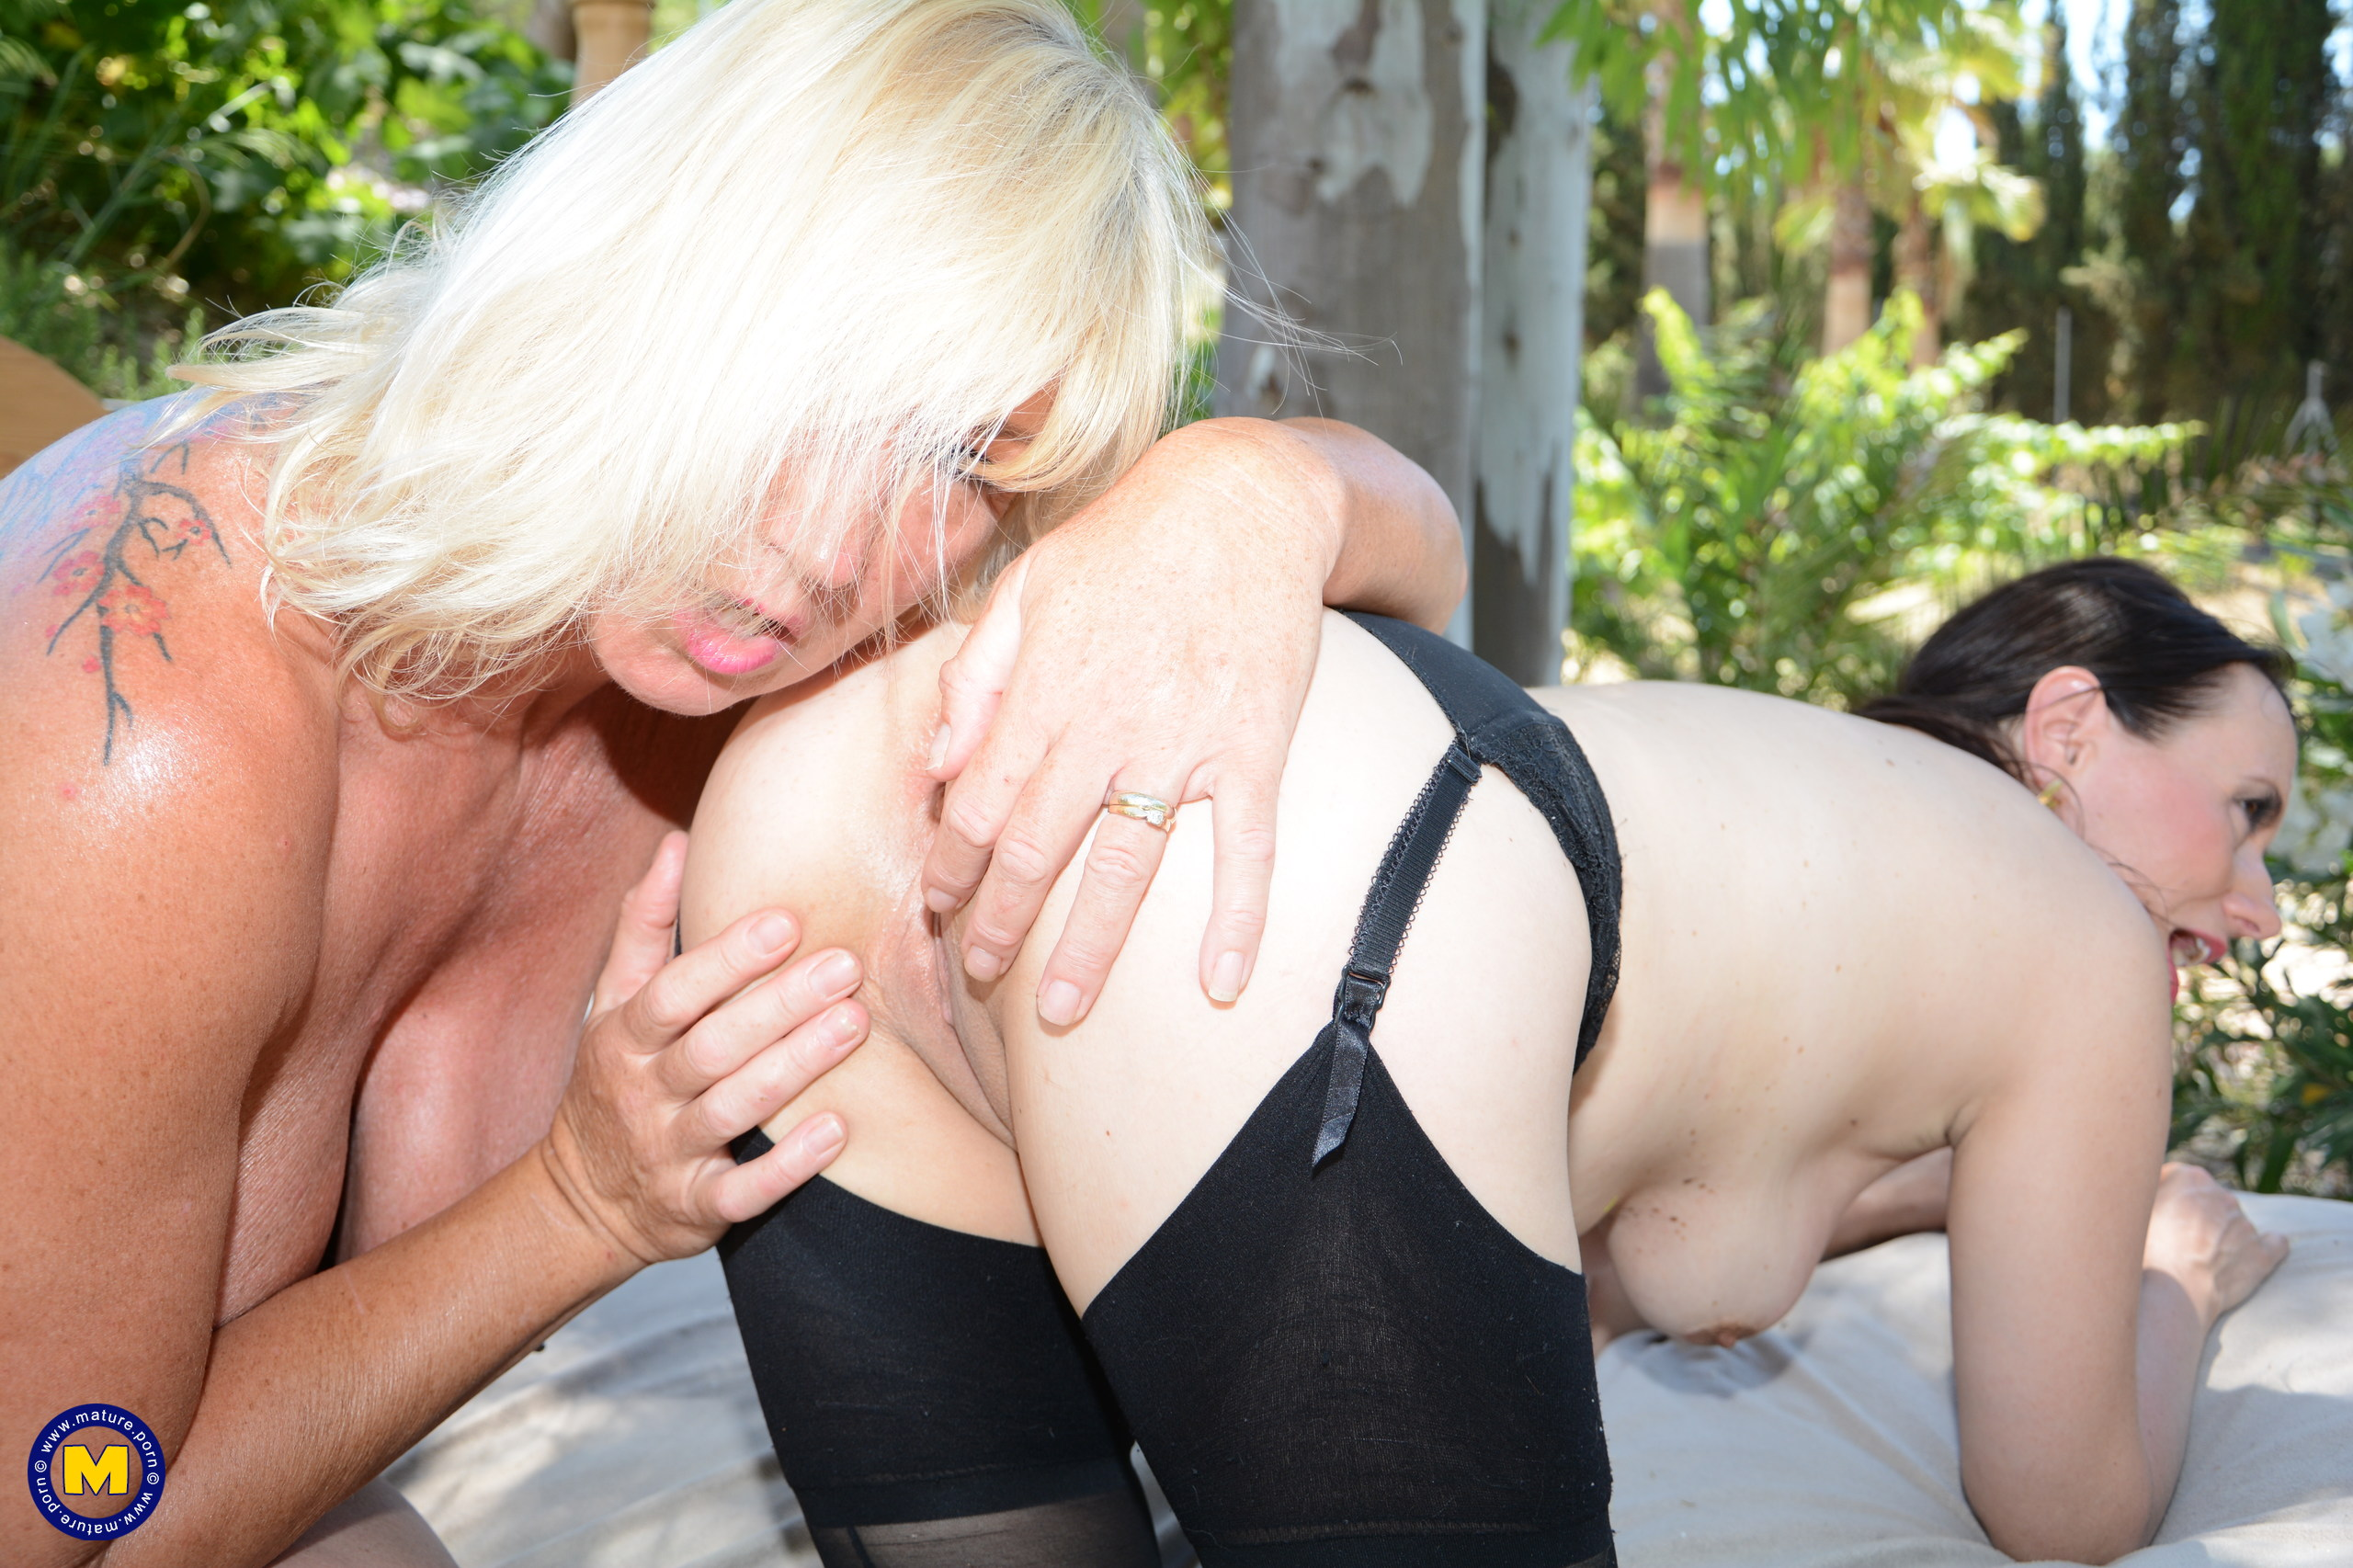 grannys finca in majorca is a honeytrap for young bi curious girls #1